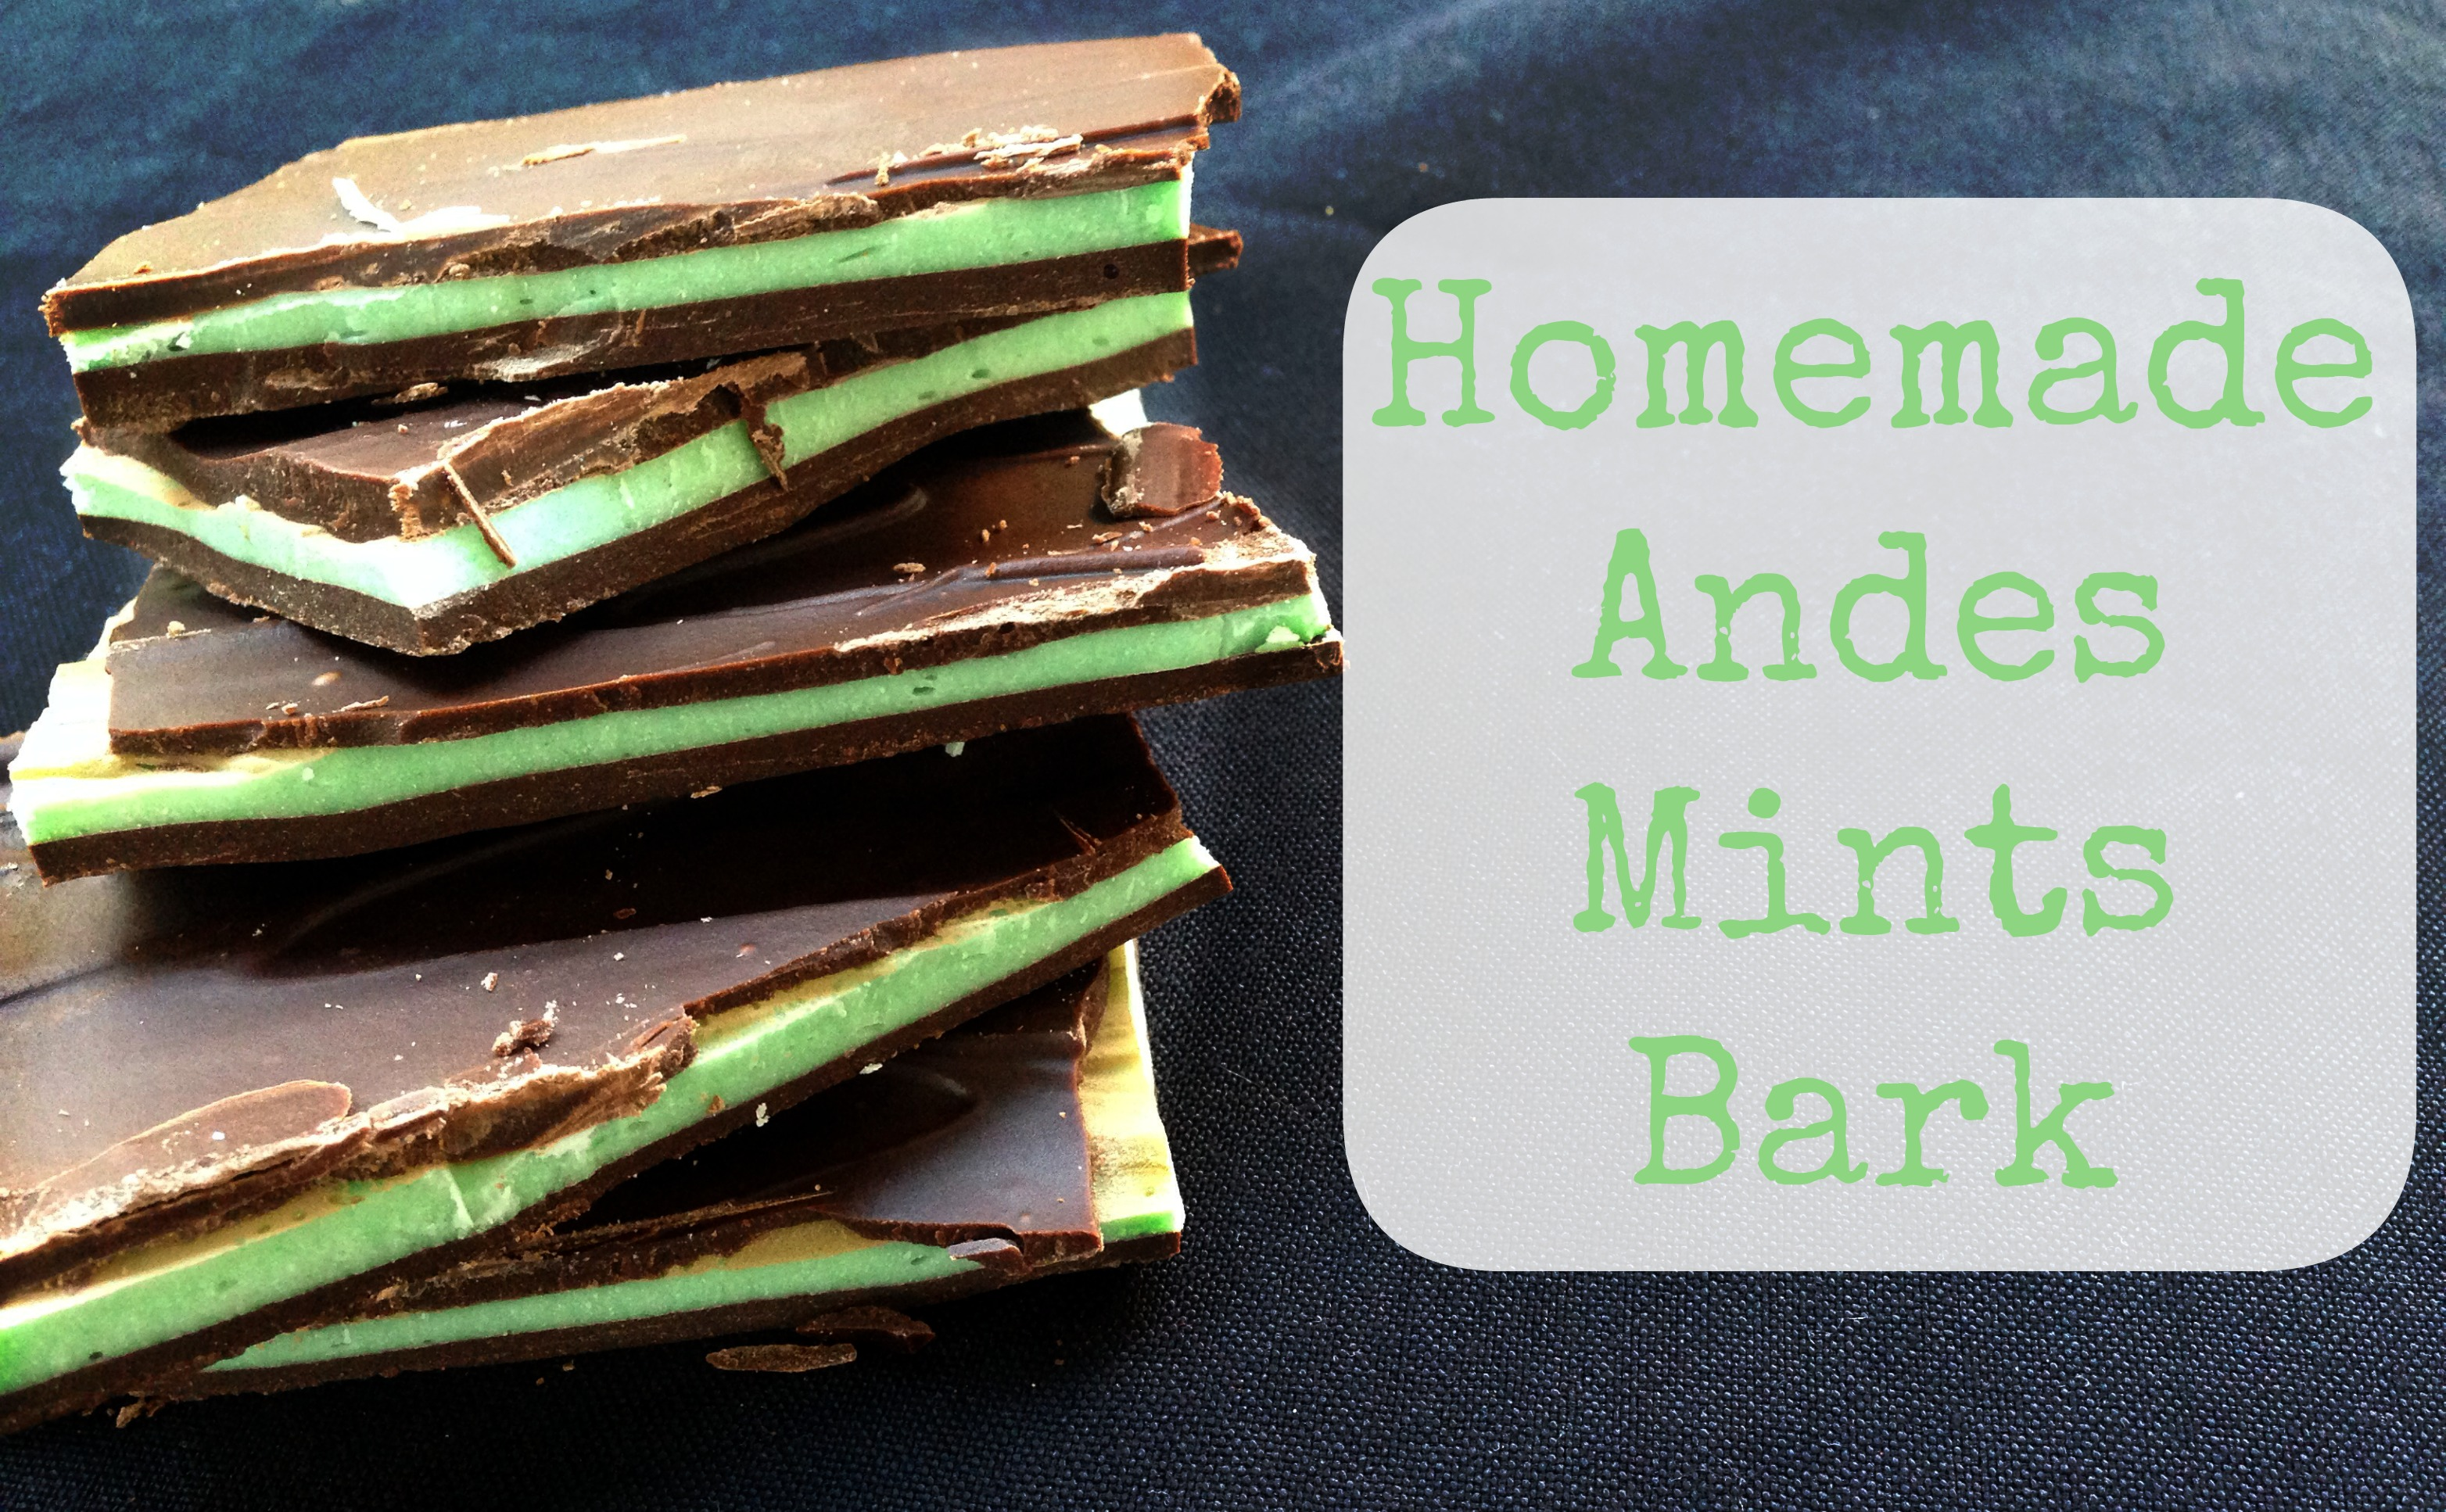 National Chocolate Mint Day Homemade Andes Chocolate Mints Bark The Foodie Patootie